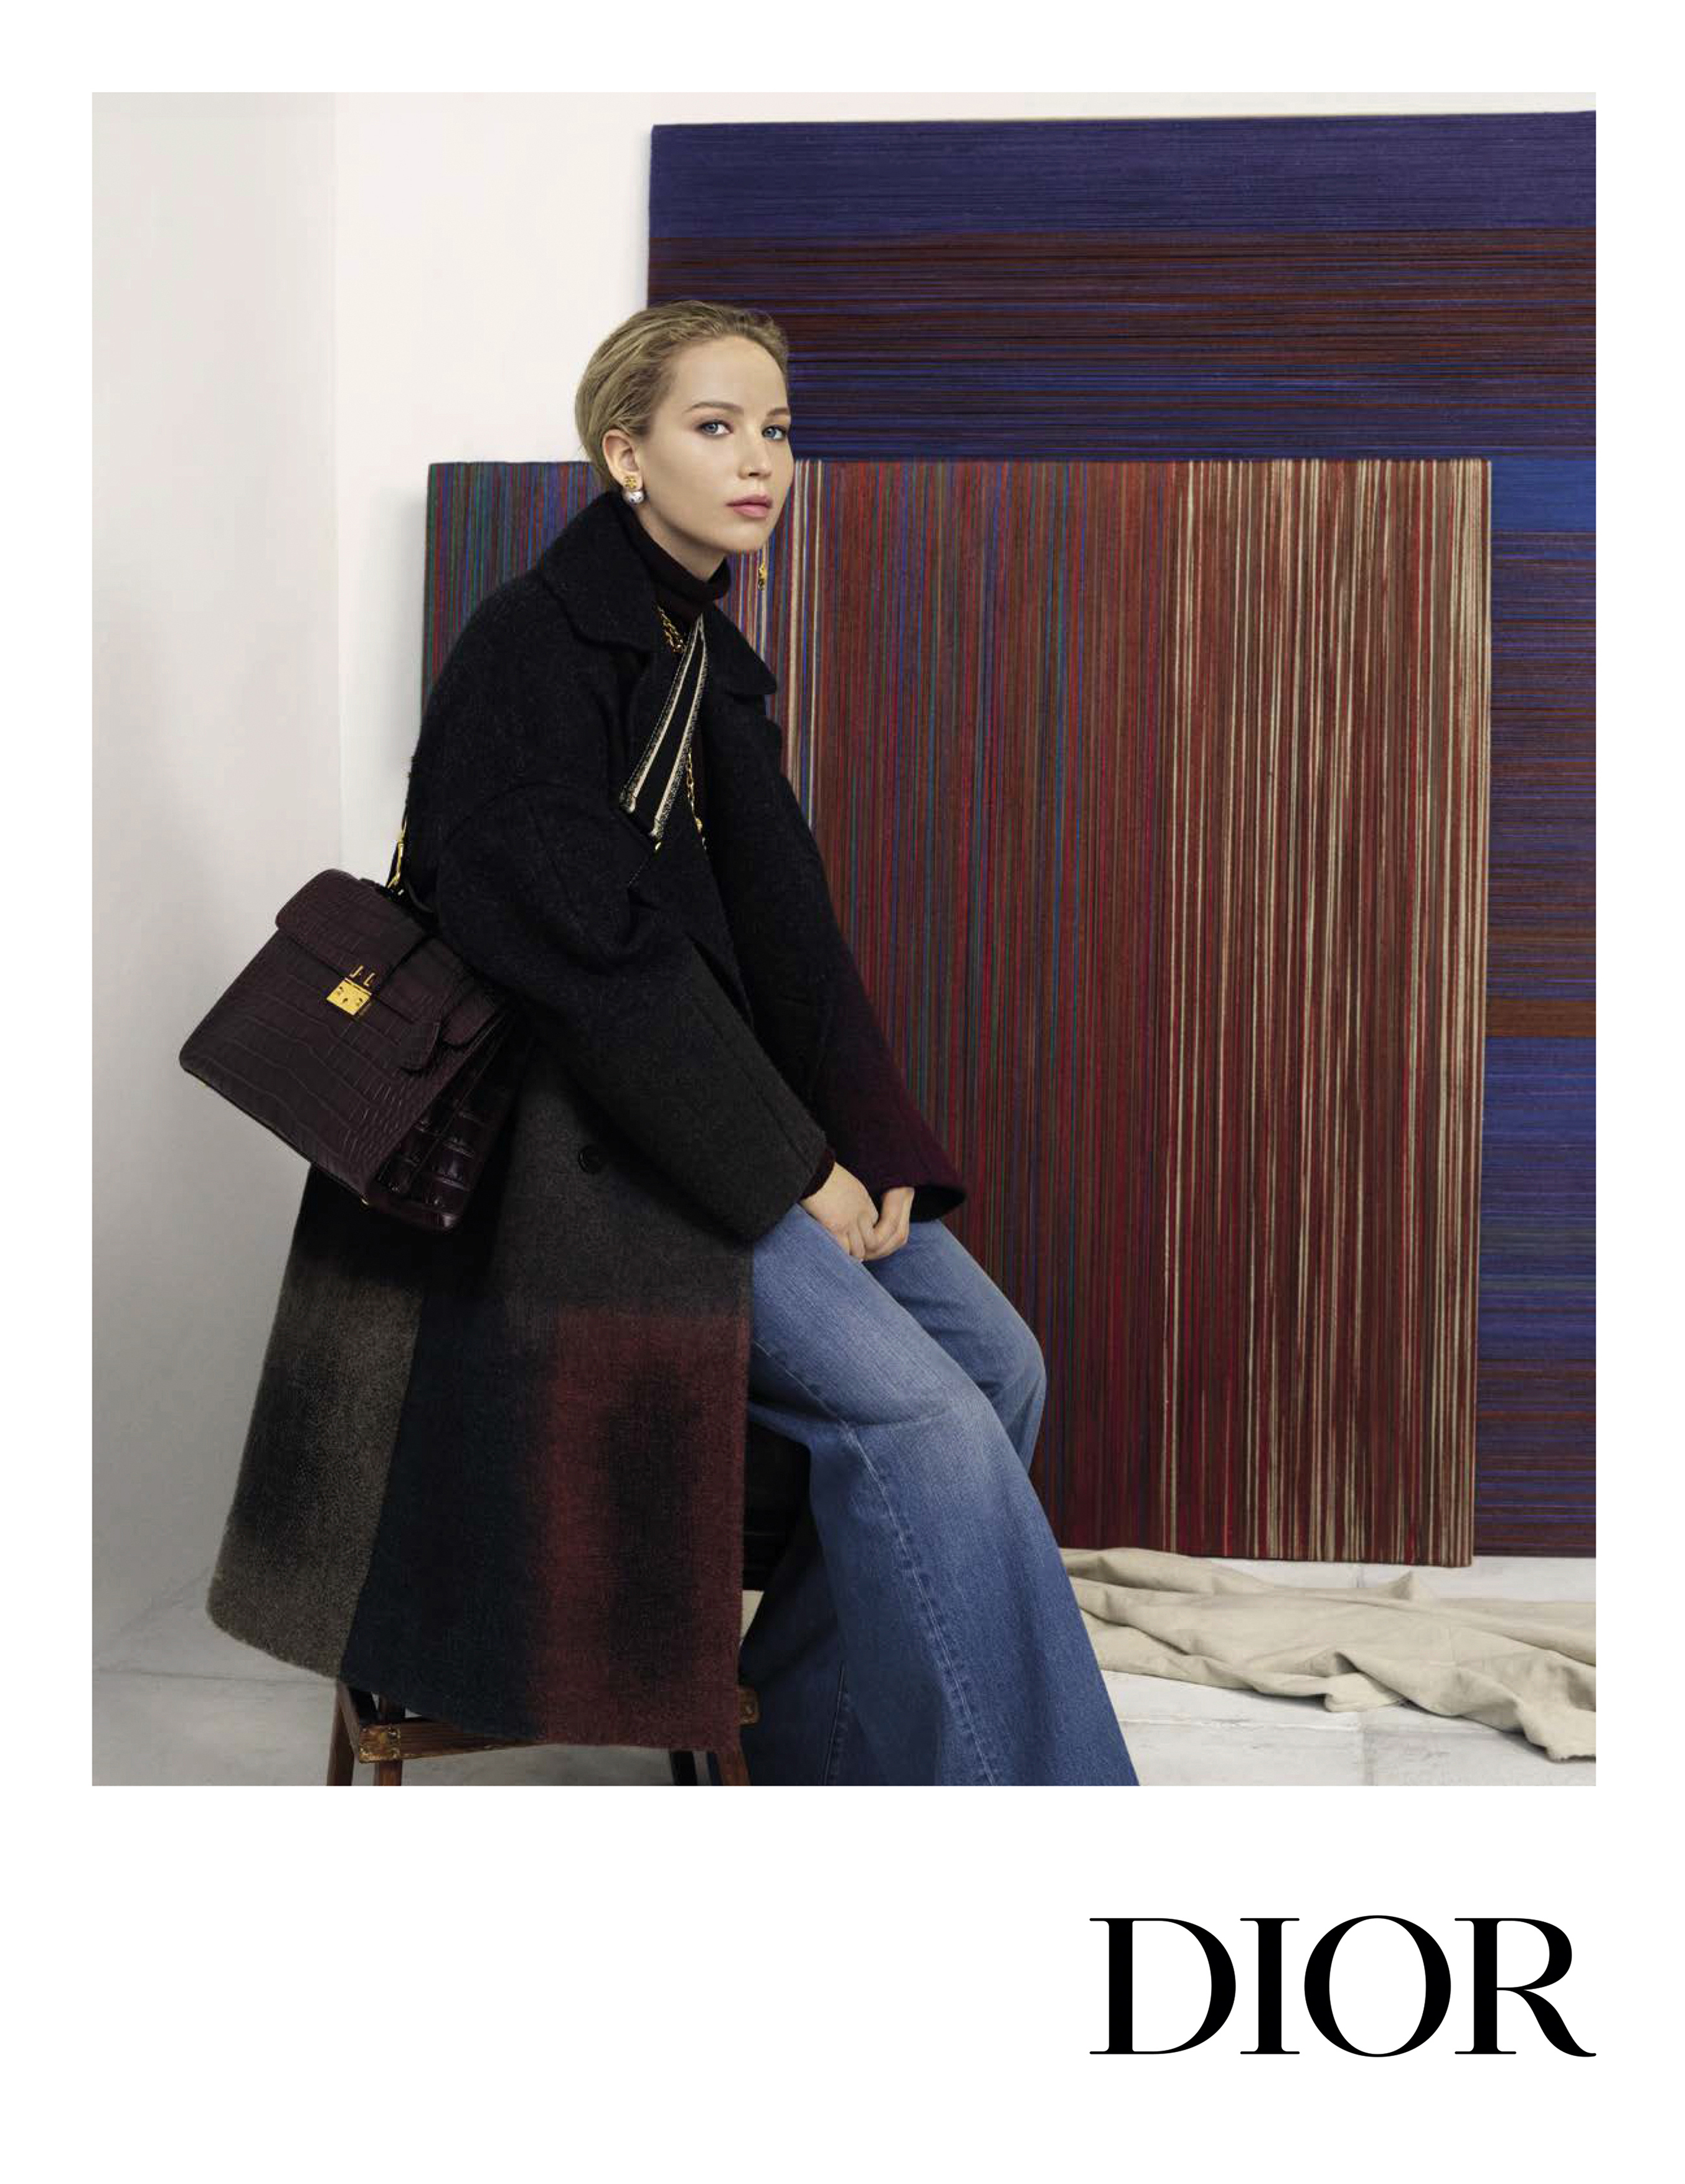 Dior Pre-Fall 2019 Ad Campaign with Jennifer Lawrence